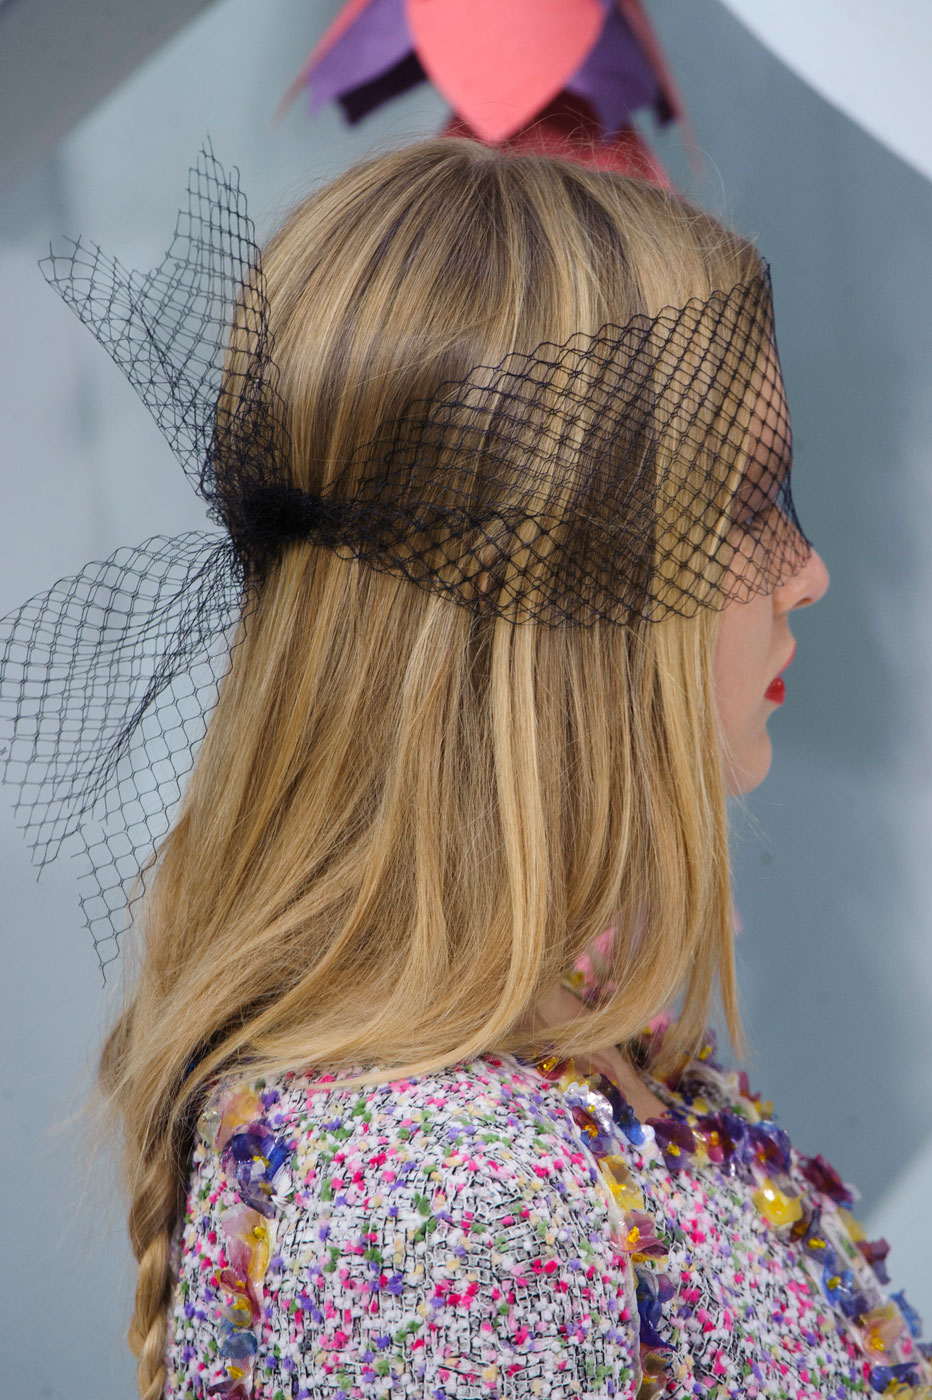 Chanel-fashion-runway-show-close-ups-haute-couture-paris-spring-summer-2015-the-impression-030